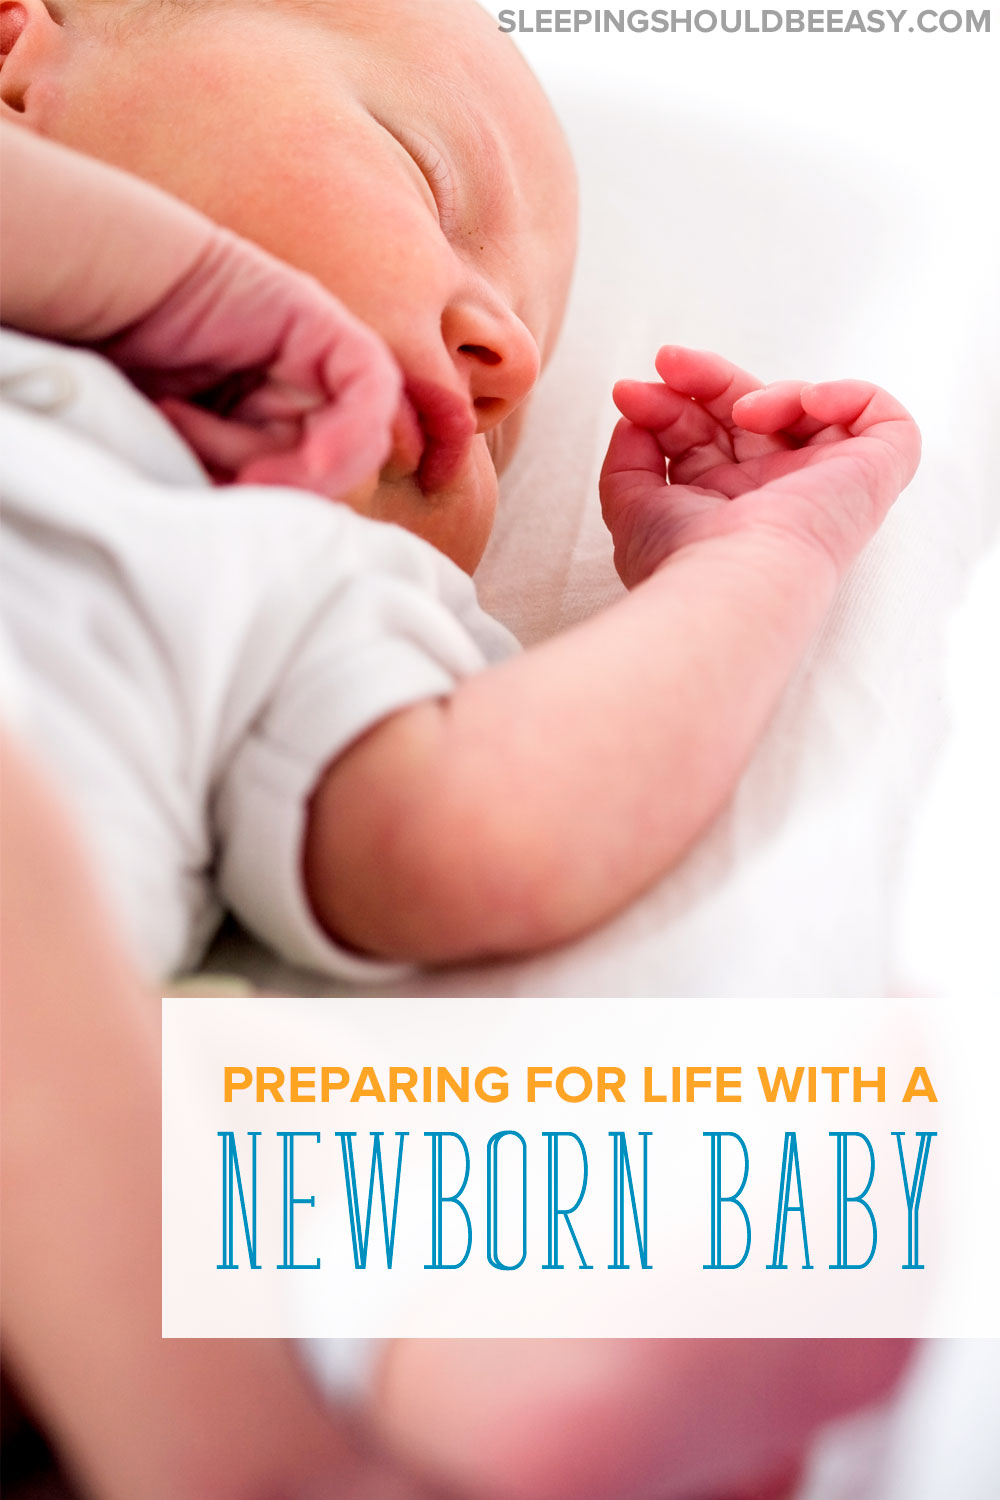 When does life with a newborn get easier? The first few months of your child's life can be some of the toughest. After all, you've heard the newborn stage can be challenging, from sleep deprivation to not having enough time to get everything done. Check out these tips on adjusting to life with a newborn.